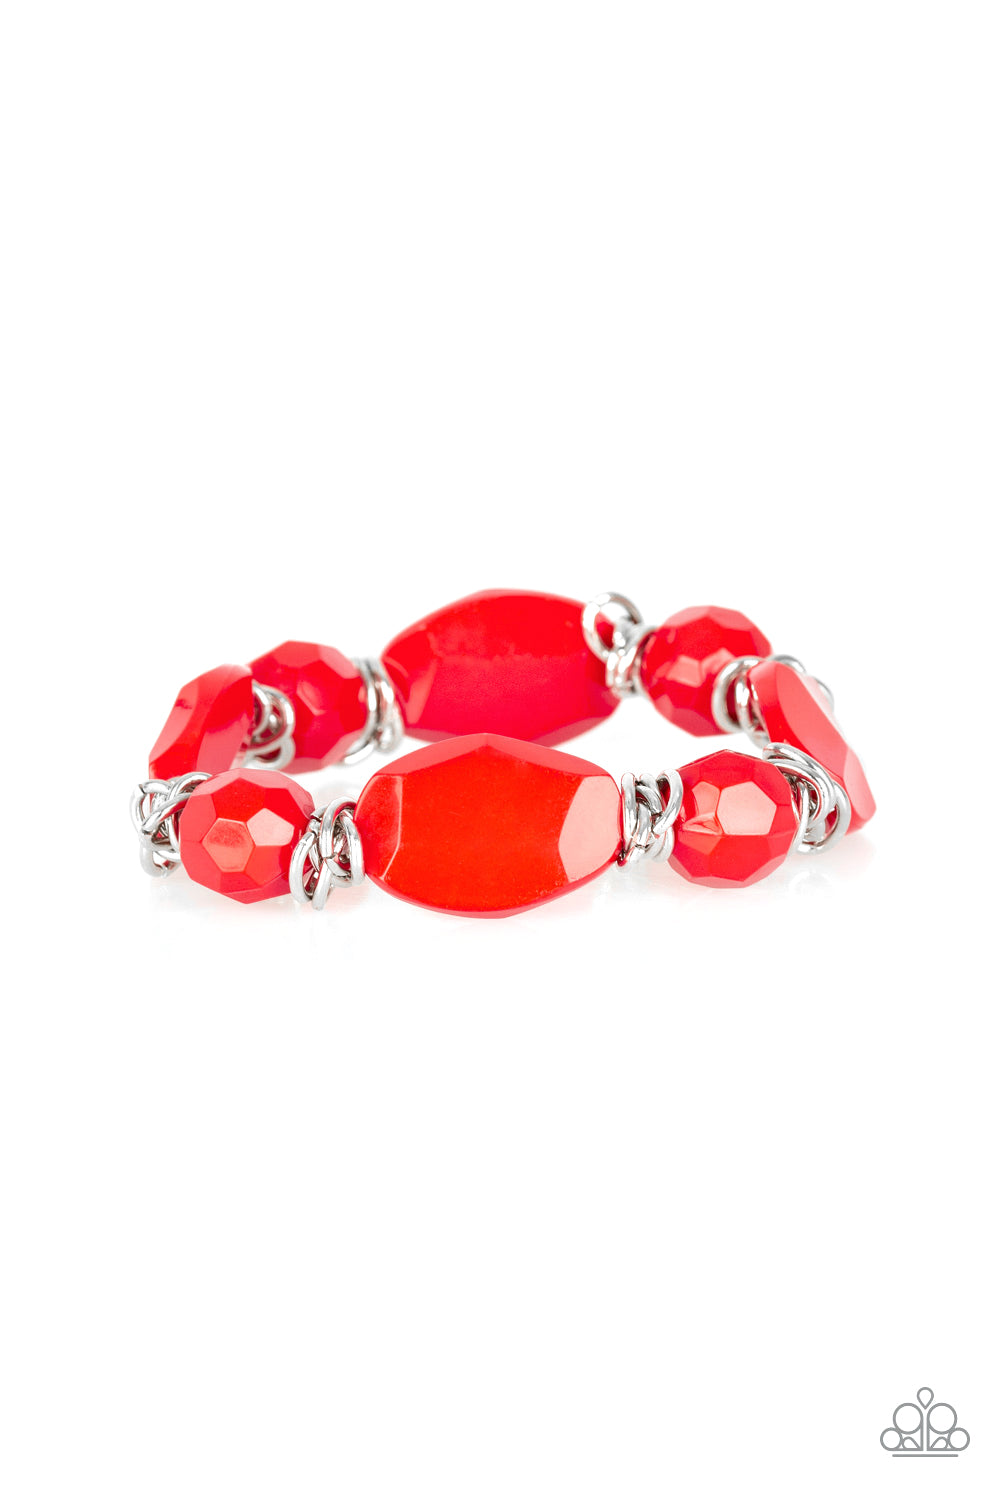 Paparazzi Accessories - Savor The Flavor - Red Bracelet - JMJ Jewelry Collection